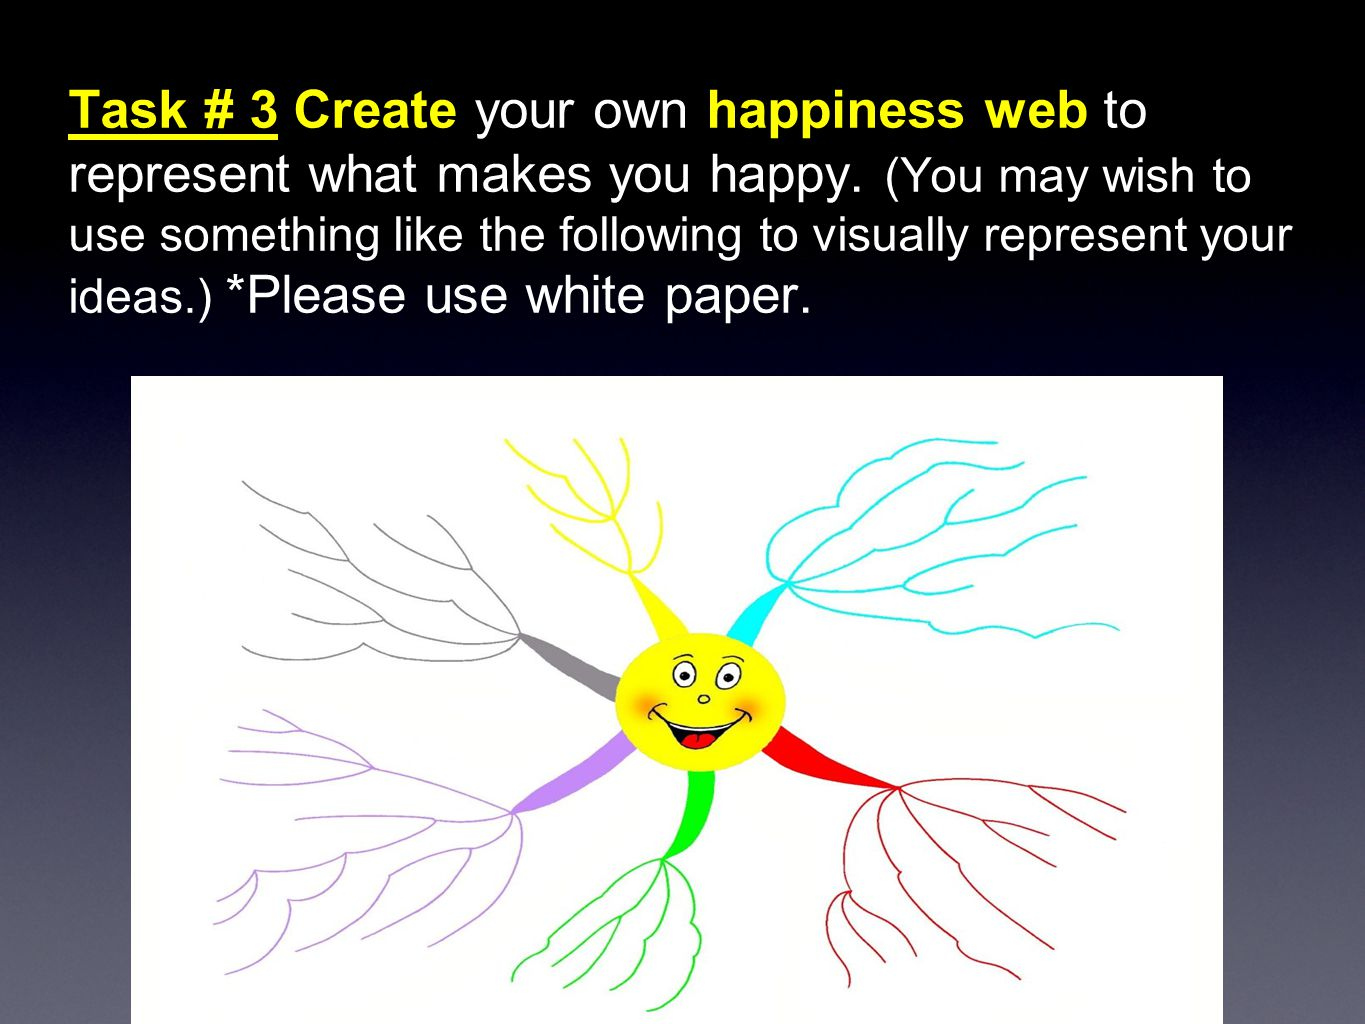 Task # 3 Create your own happiness web to represent what makes you happy.